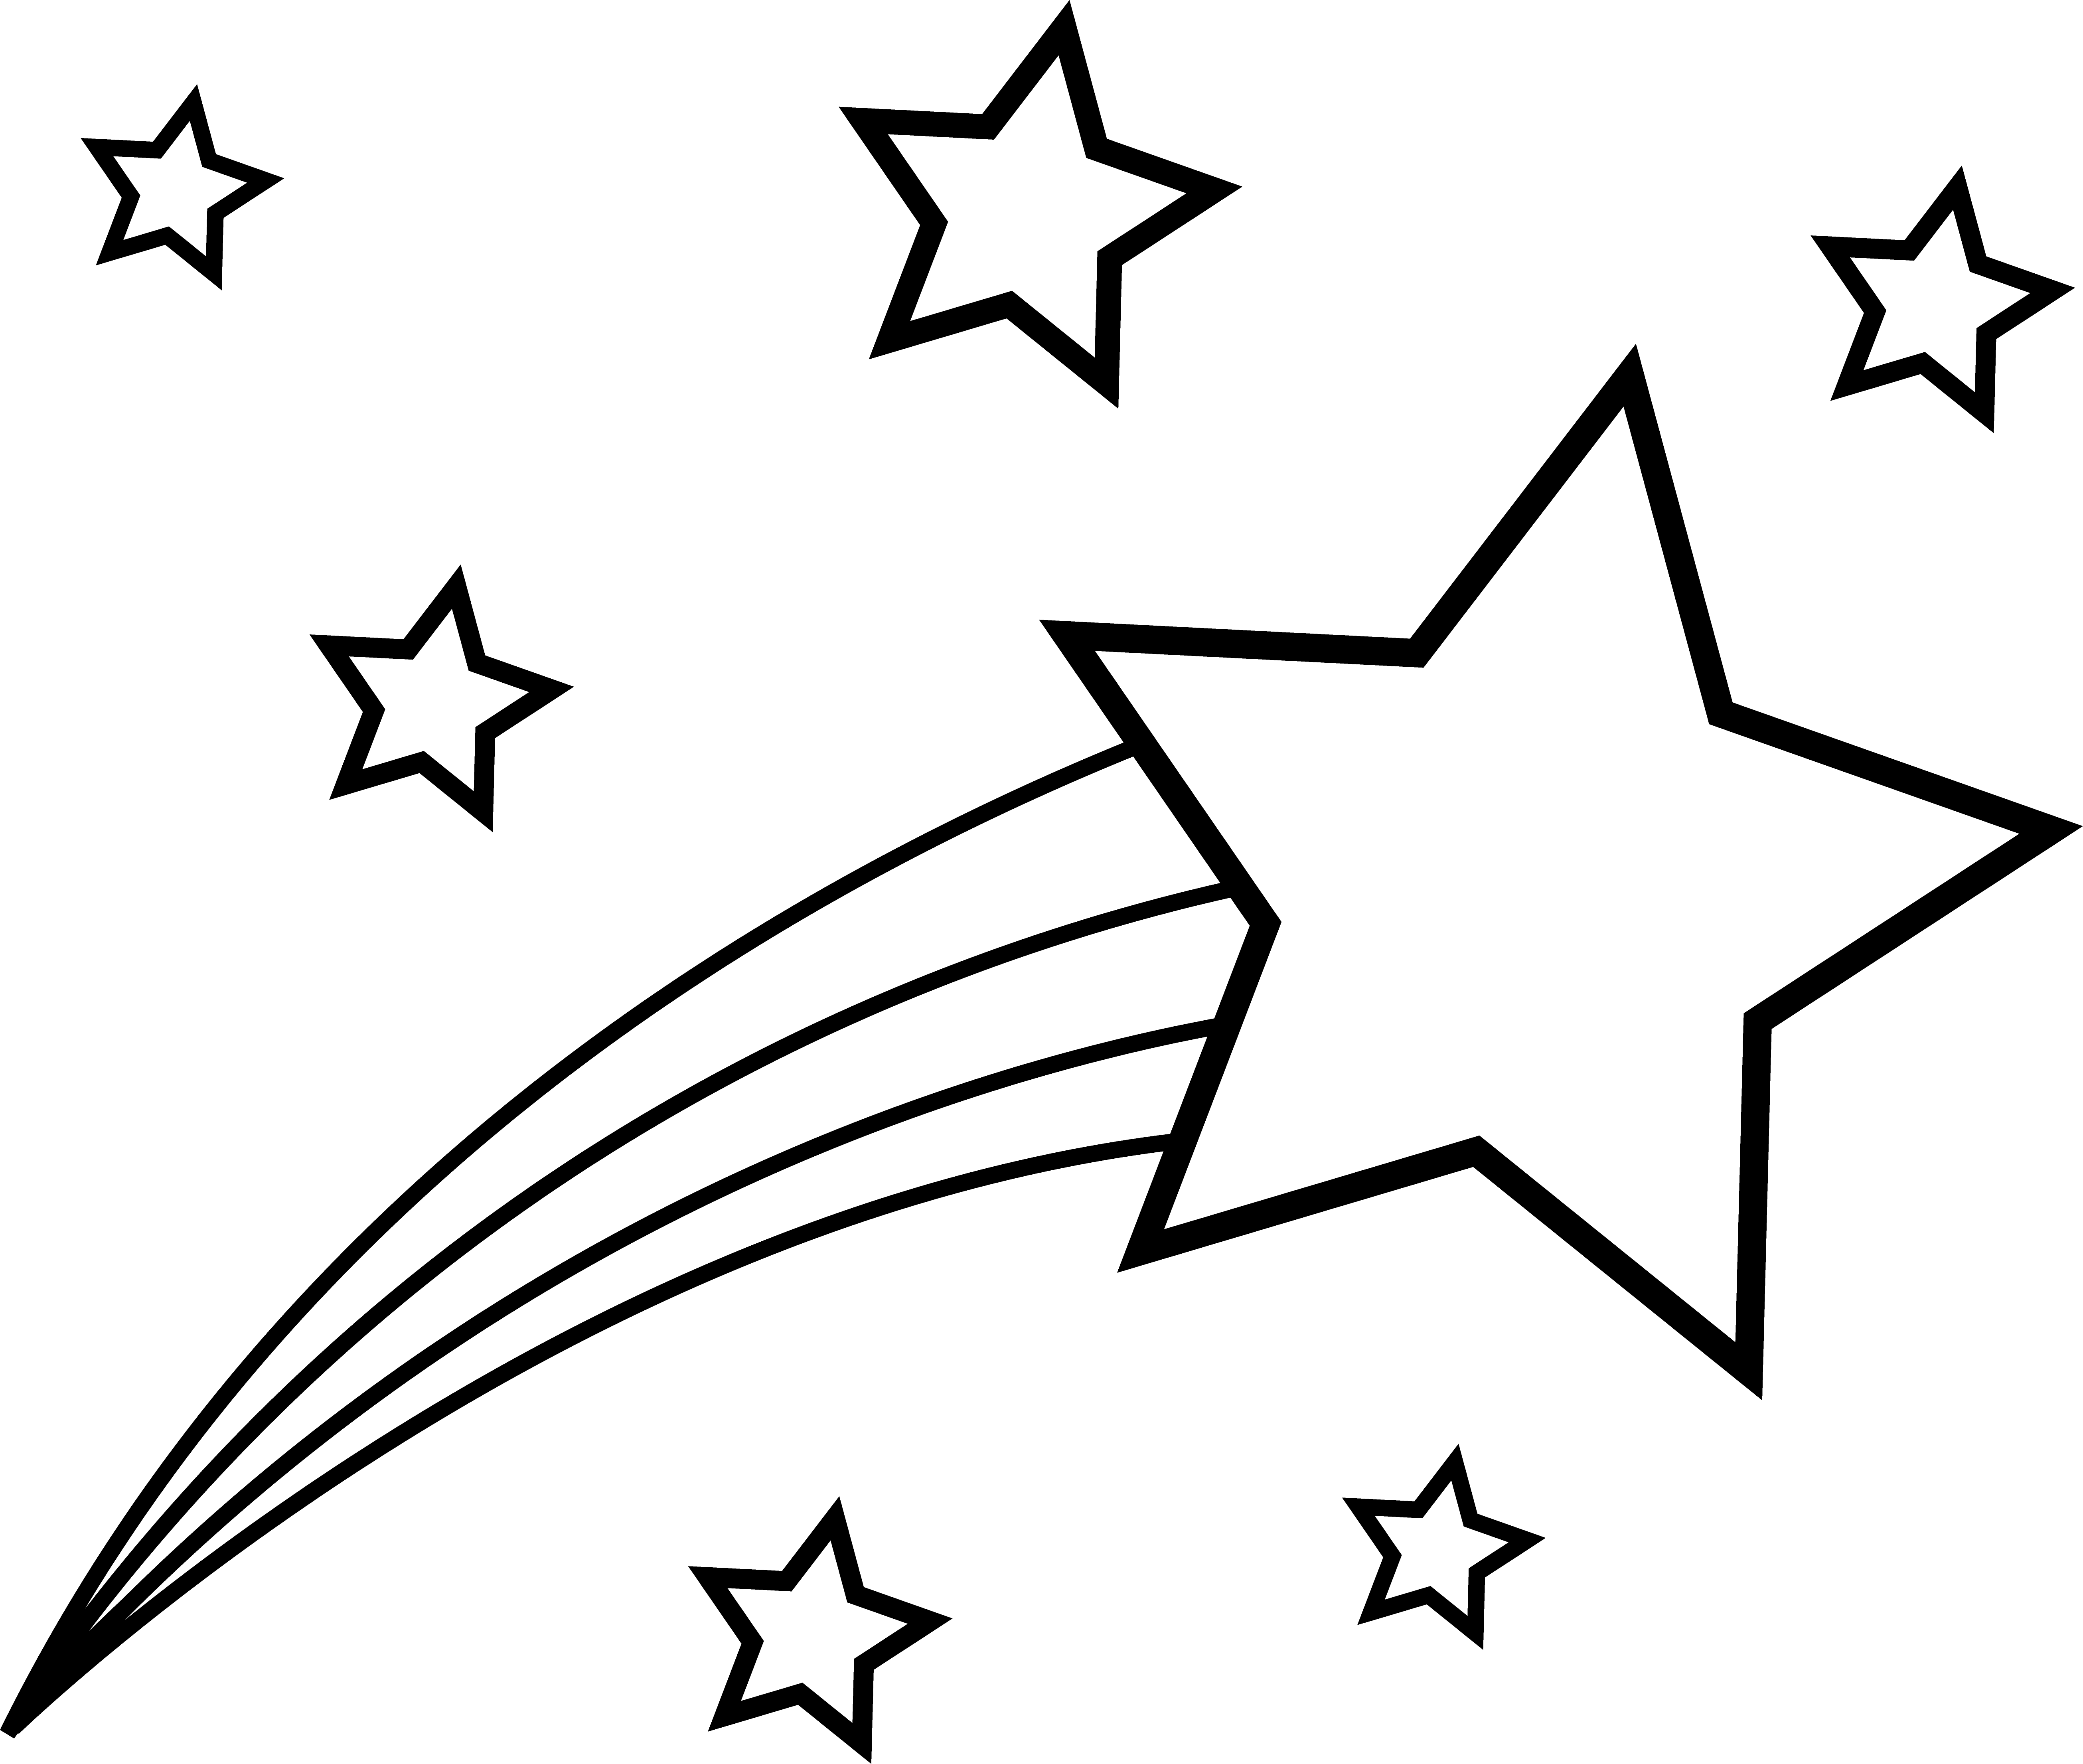 Shooting Star Clip Art Outline | Clipart Panda - Free Clipart Images